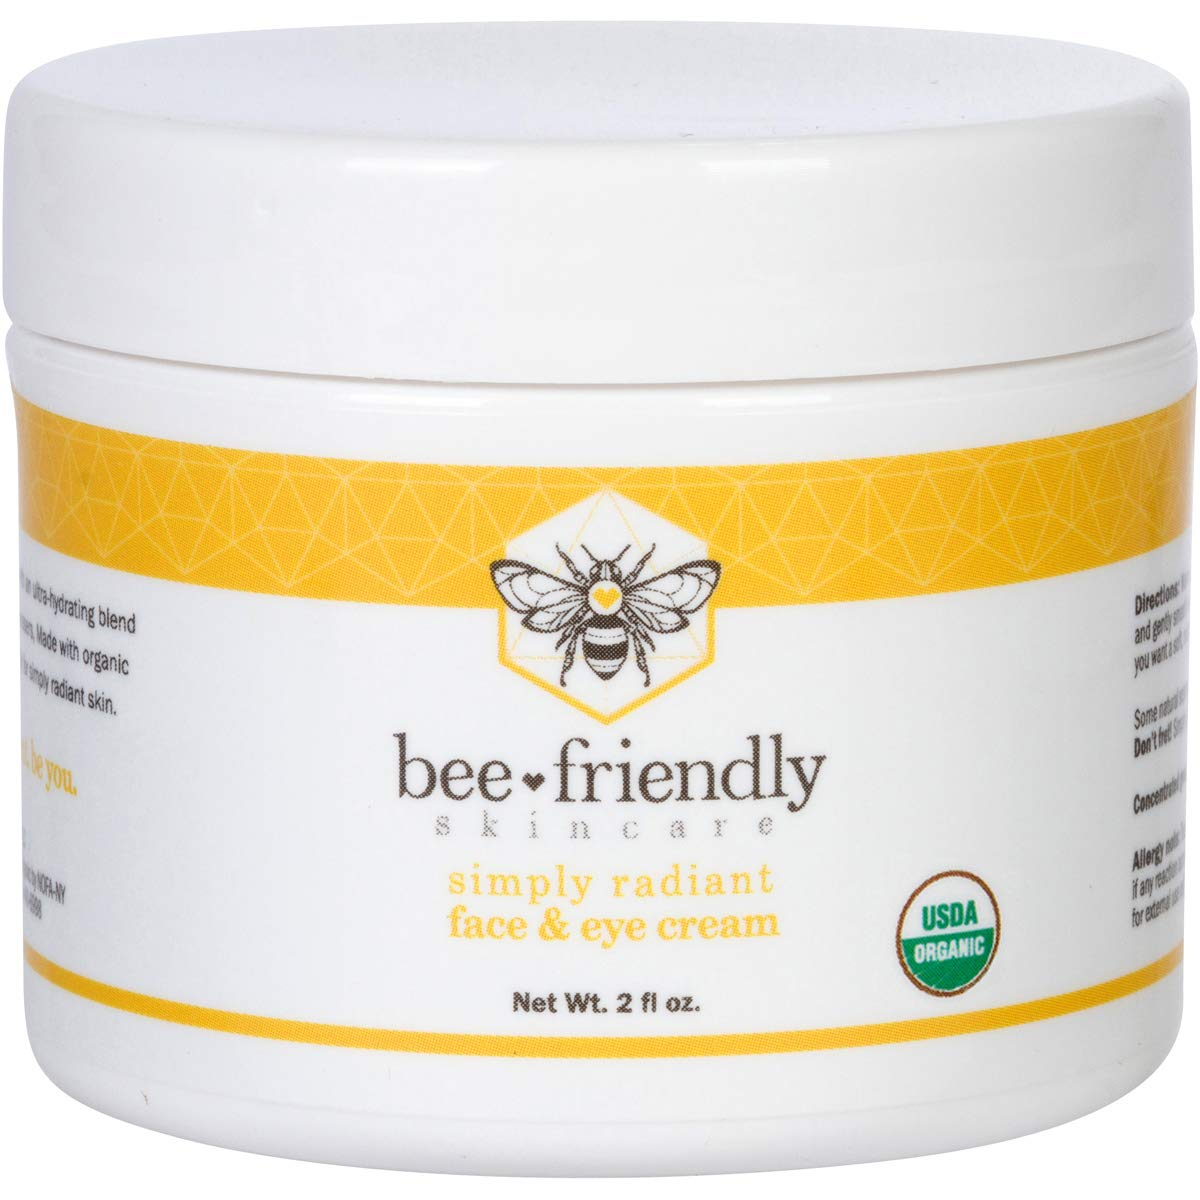 BeeFriendly Face and Eye Cream All Natural USDA Certified Organic Moisturizer, All In One Face, Eye, Neck, Decollete Cream, 2 oz by BeeFriendly